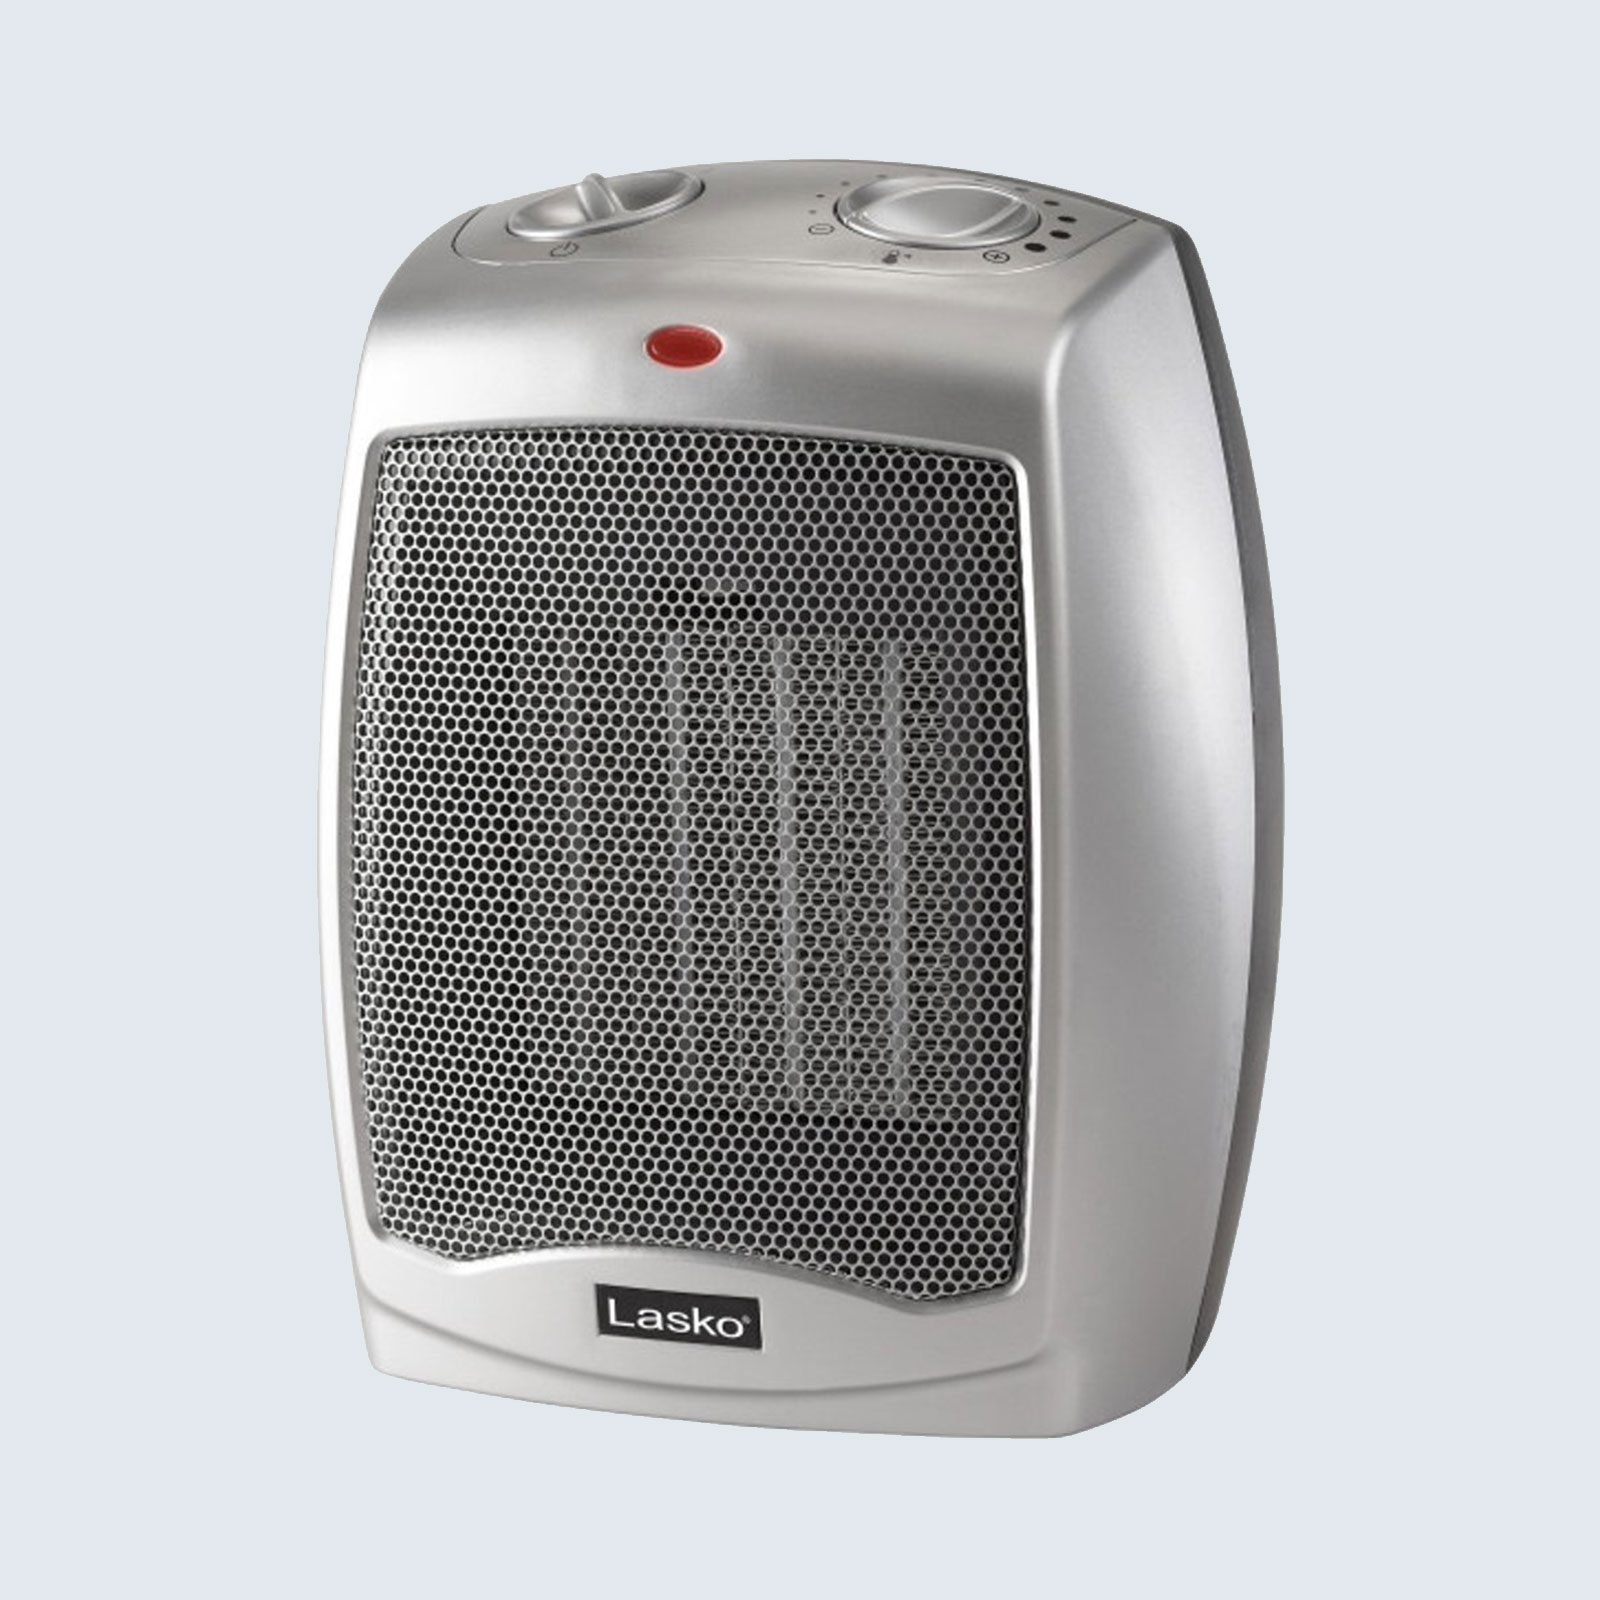 Lasko 1500W Ceramic Space Heater